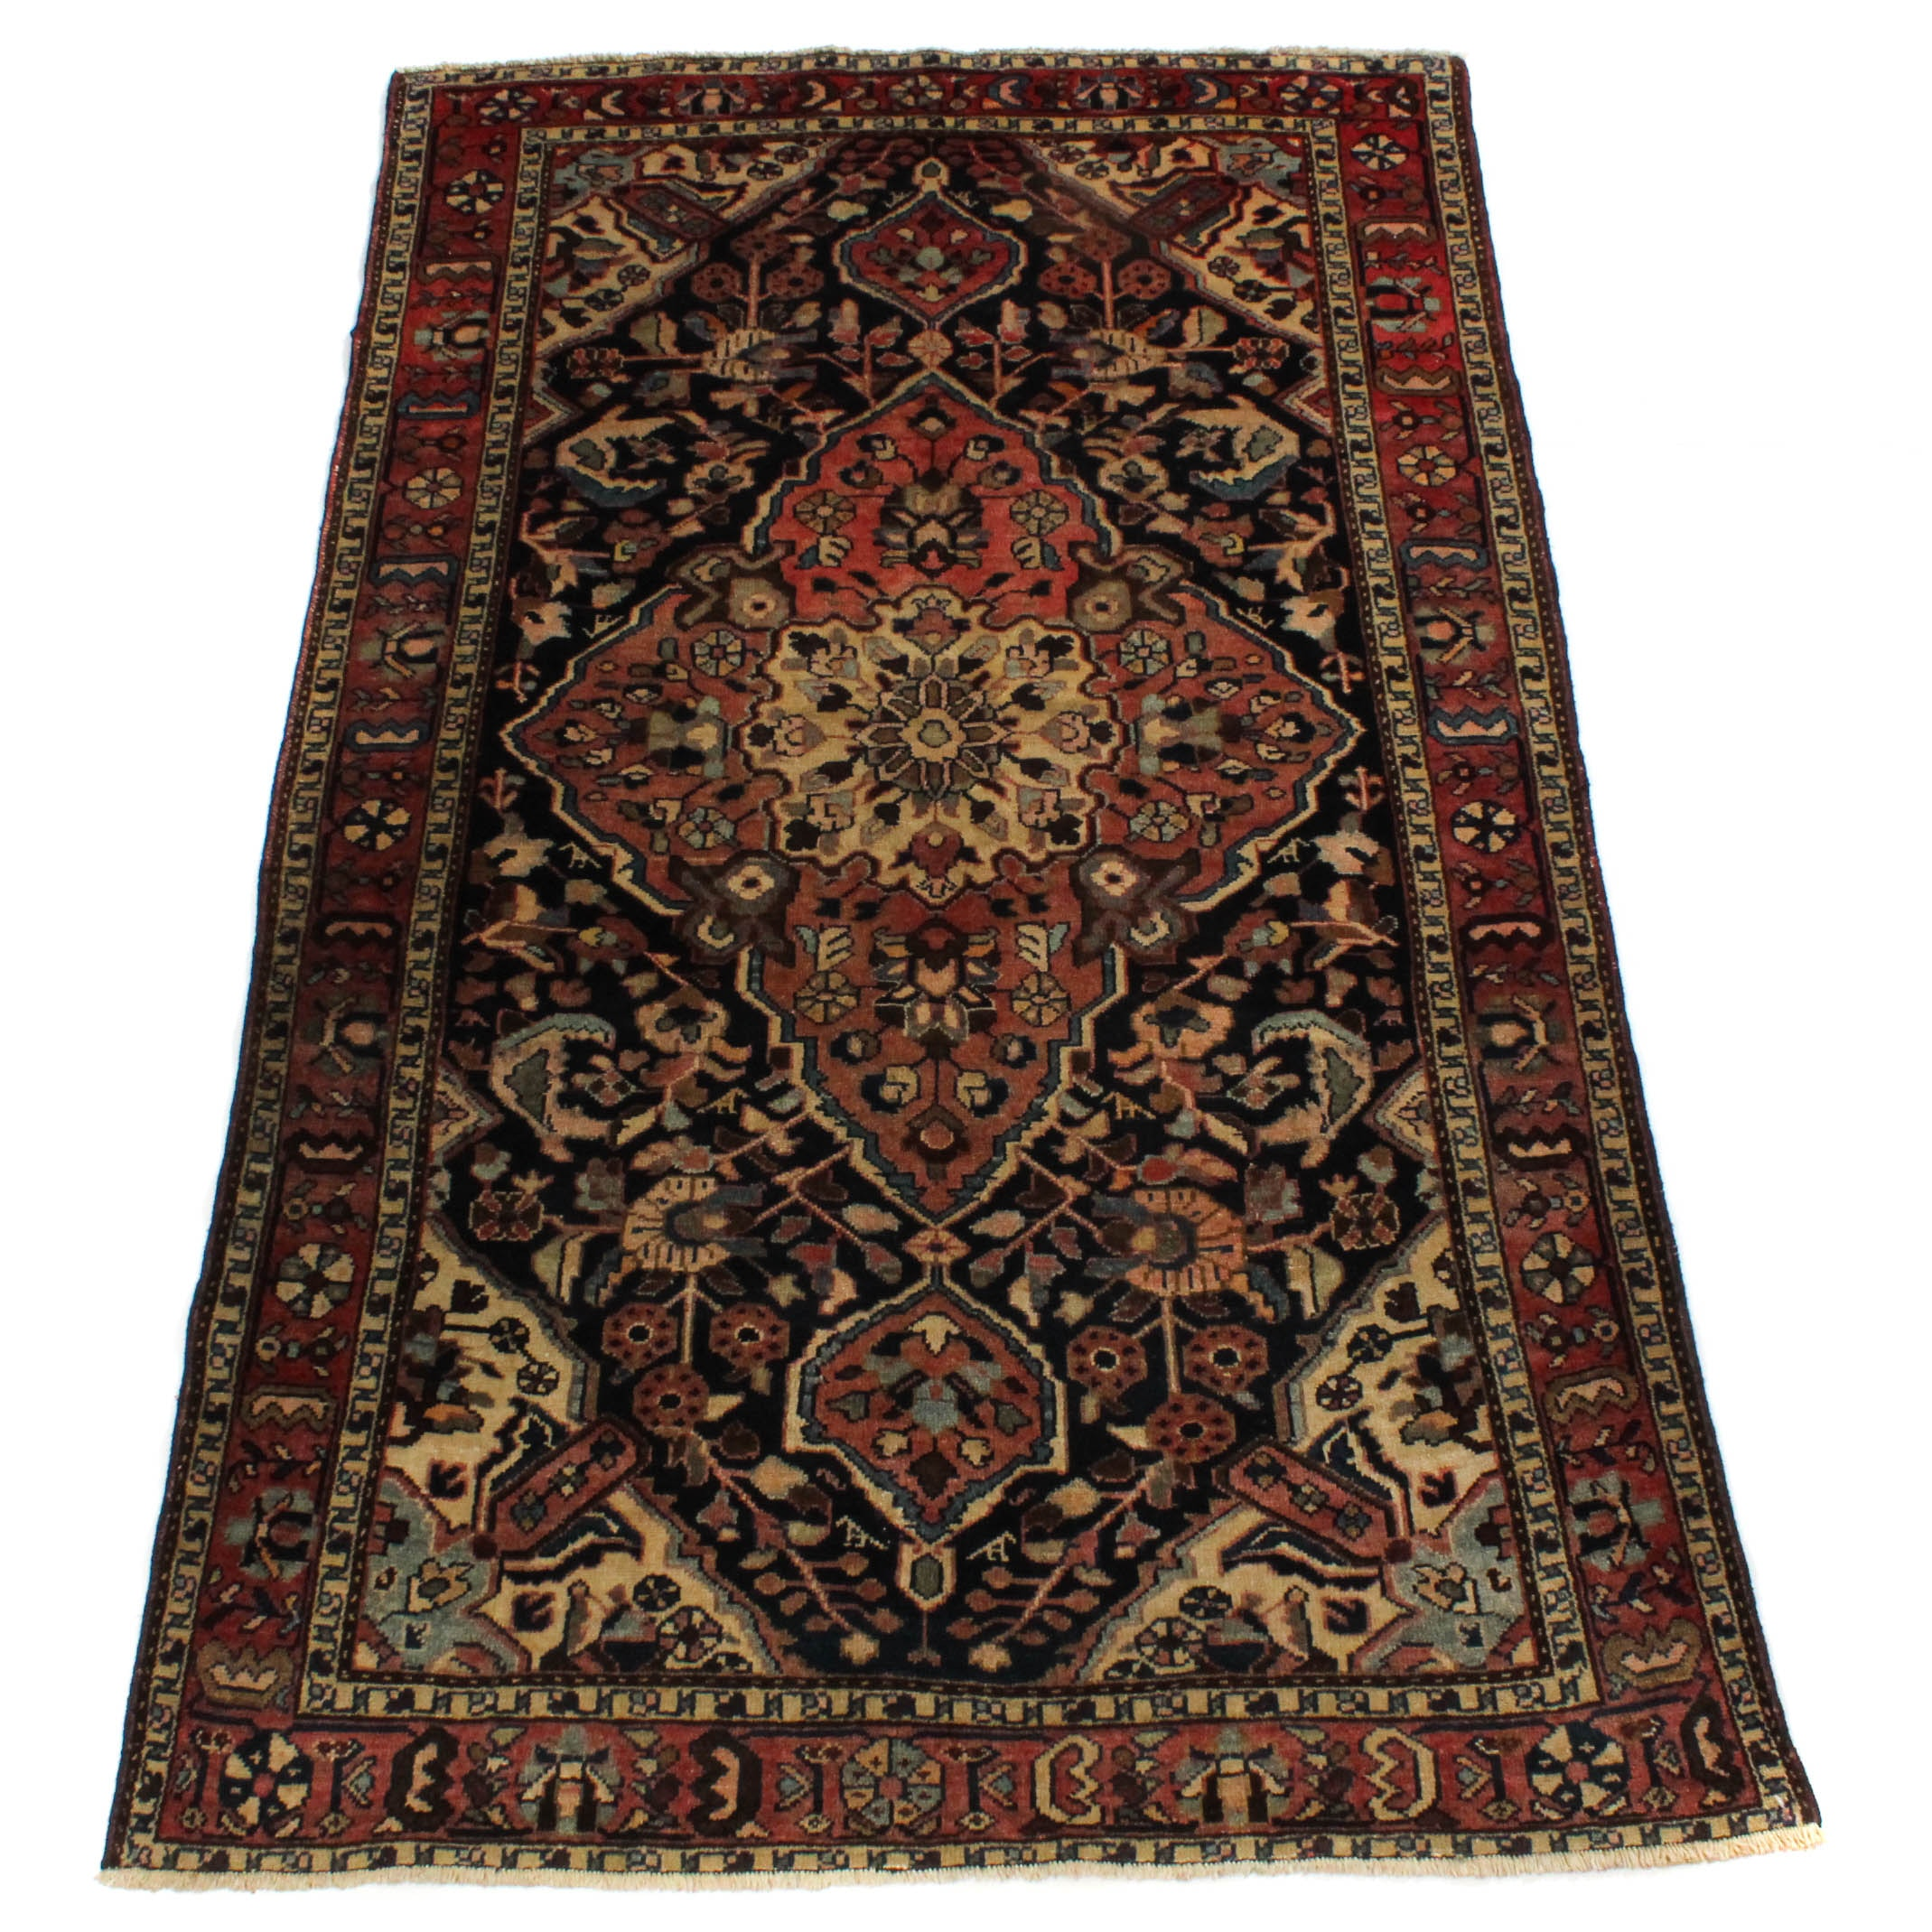 4'3 x 6'8 Semi-Antique Hand-Knotted Persian Malayer Rug